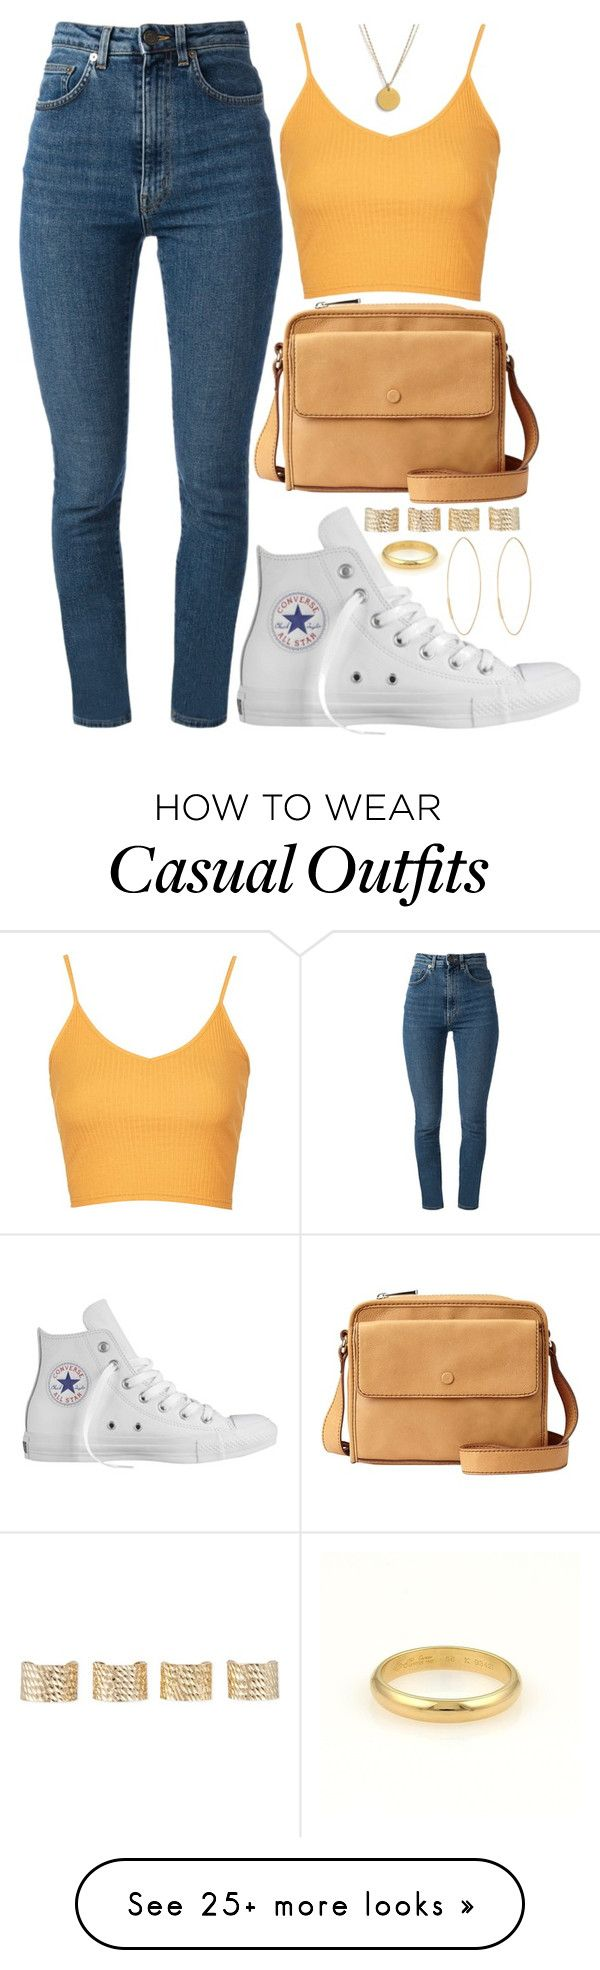 """Casual Day"" by rayray669 on Polyvore featuring Cartier, Topshop, Converse, Yves Saint Laurent, FOSSIL, Maison Margiela, Lana and Dogeared"